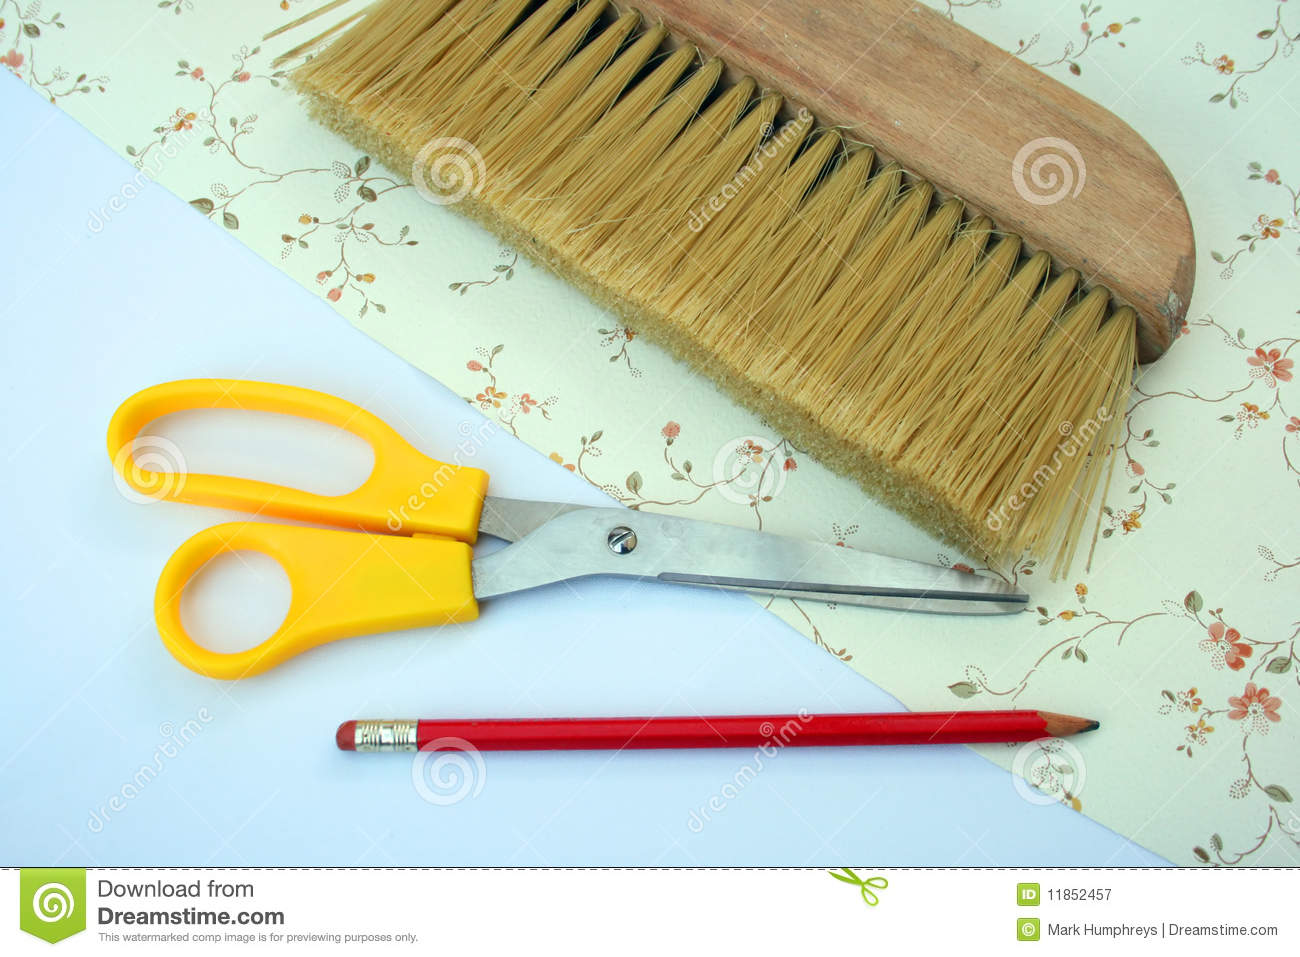 wallpapering tools royalty free stock photography image